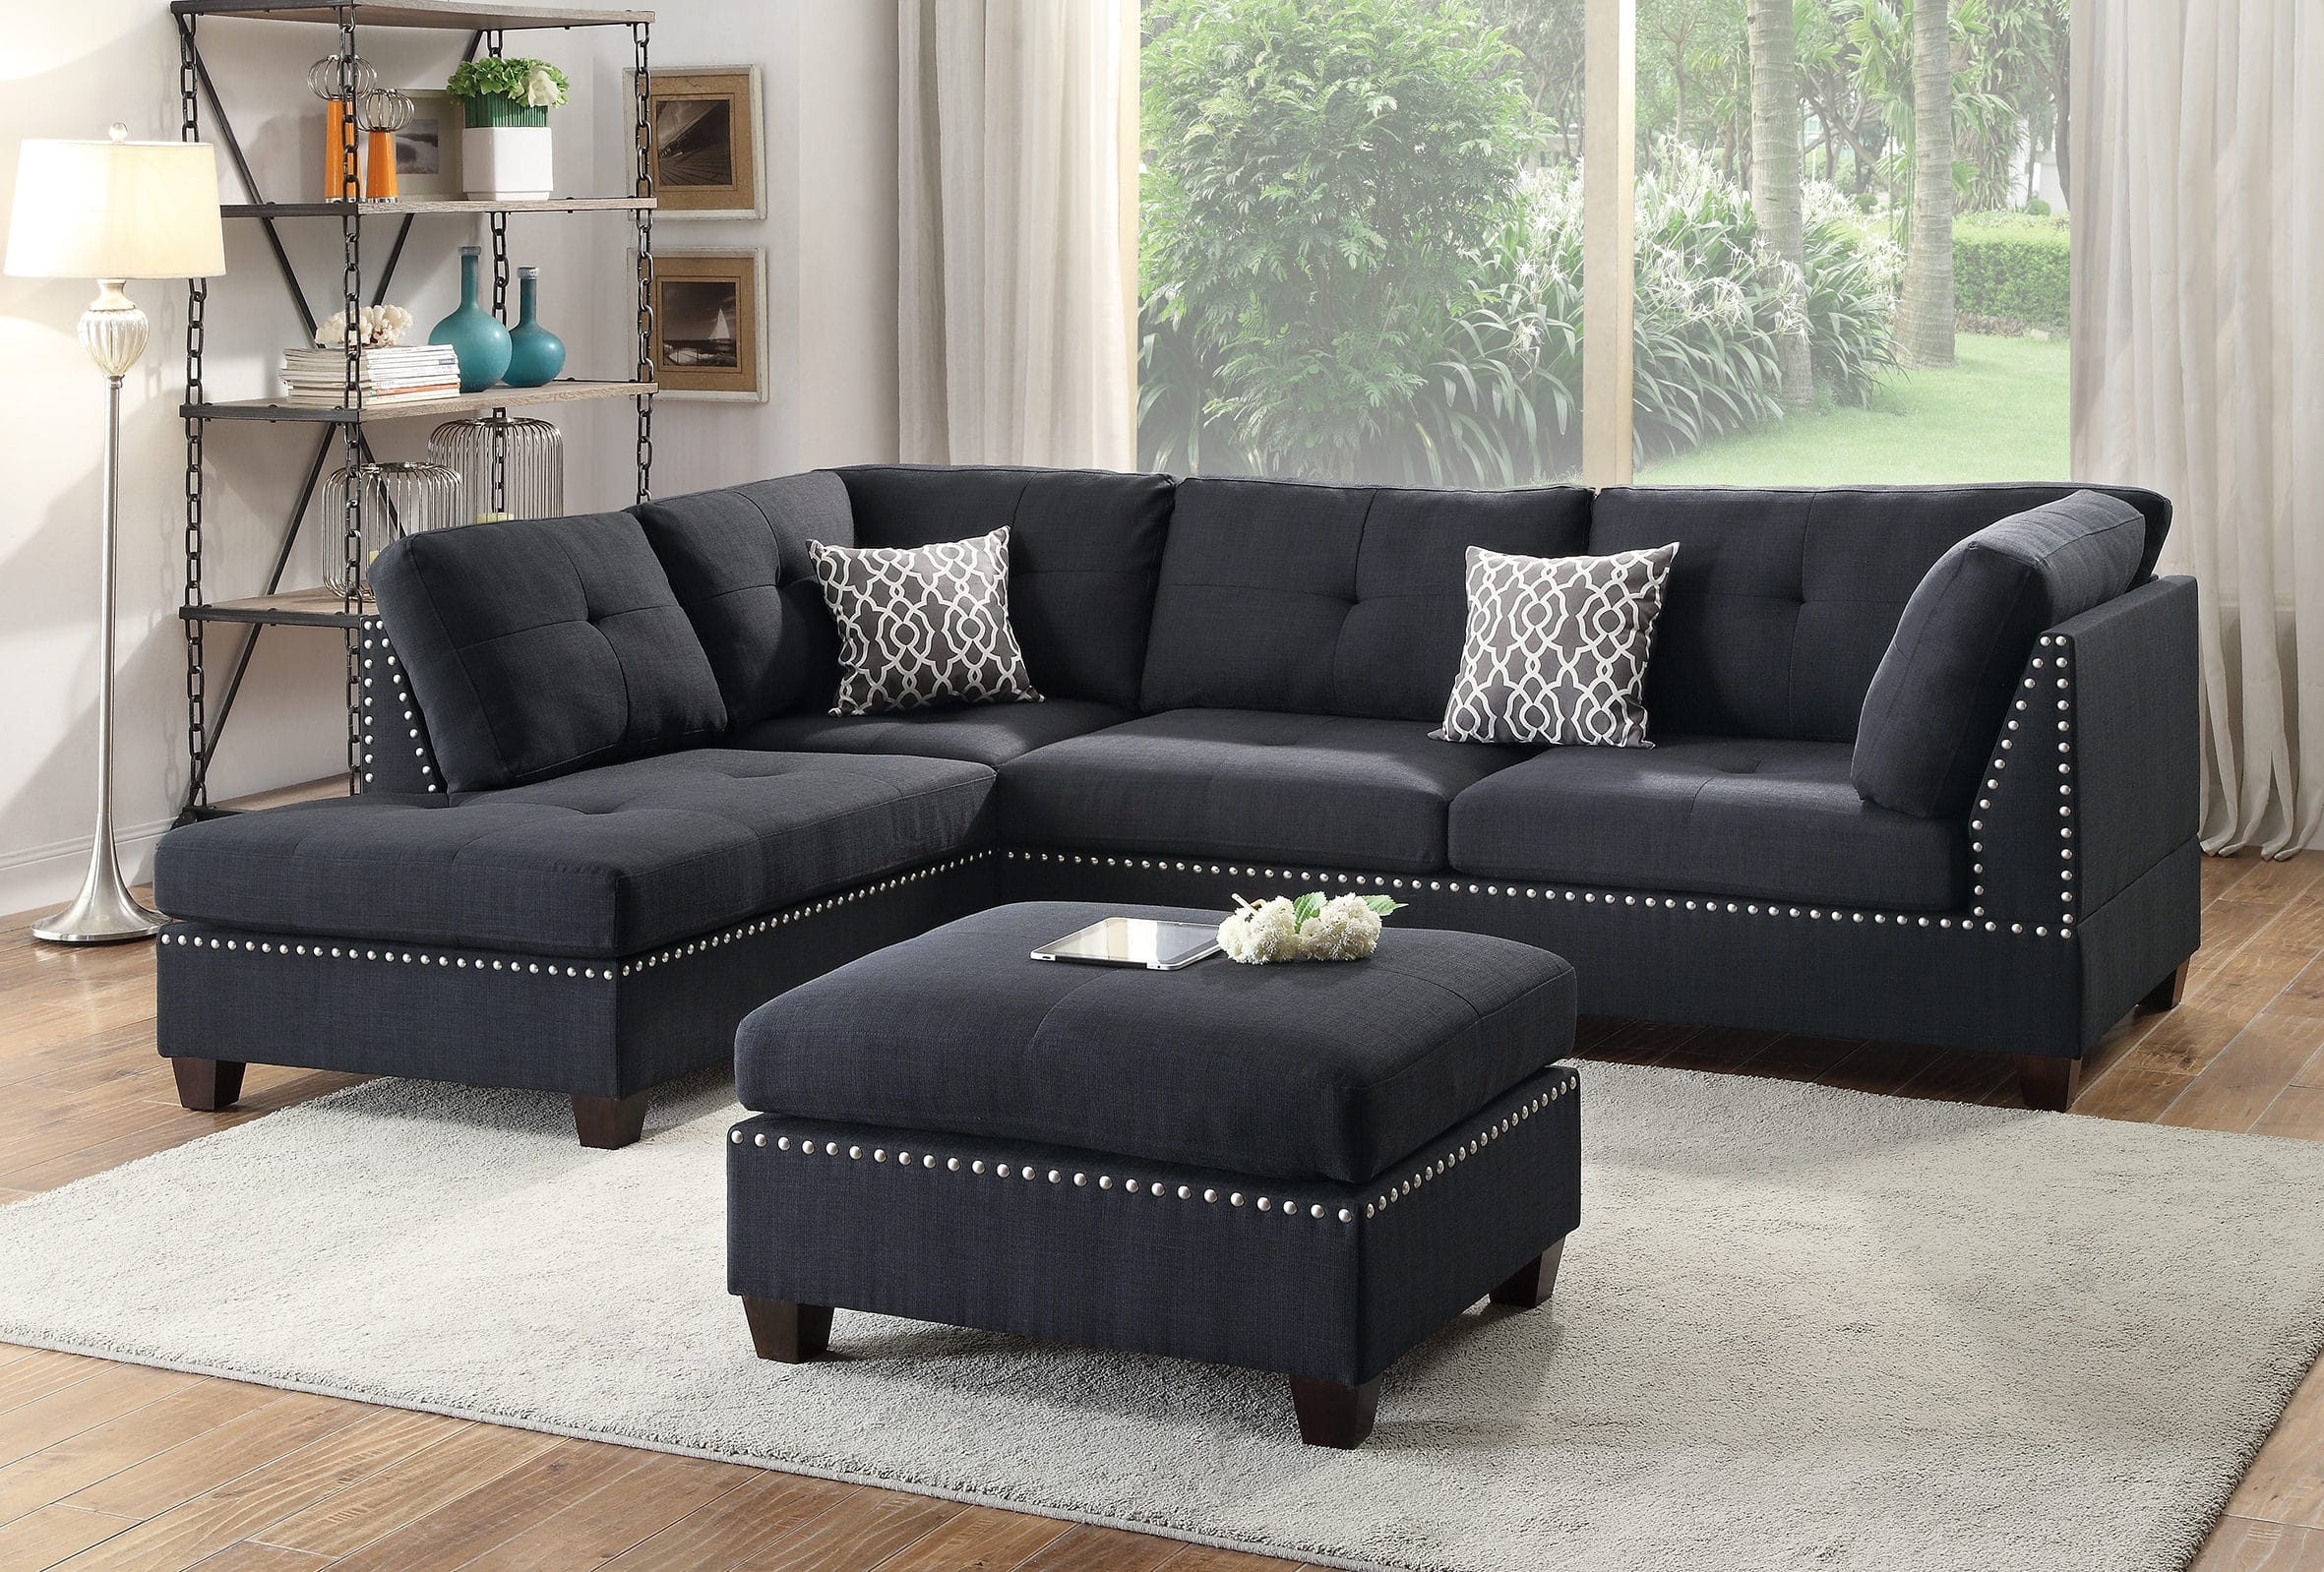 F6974 Black 3 Pcs Sectional Sofa Set By